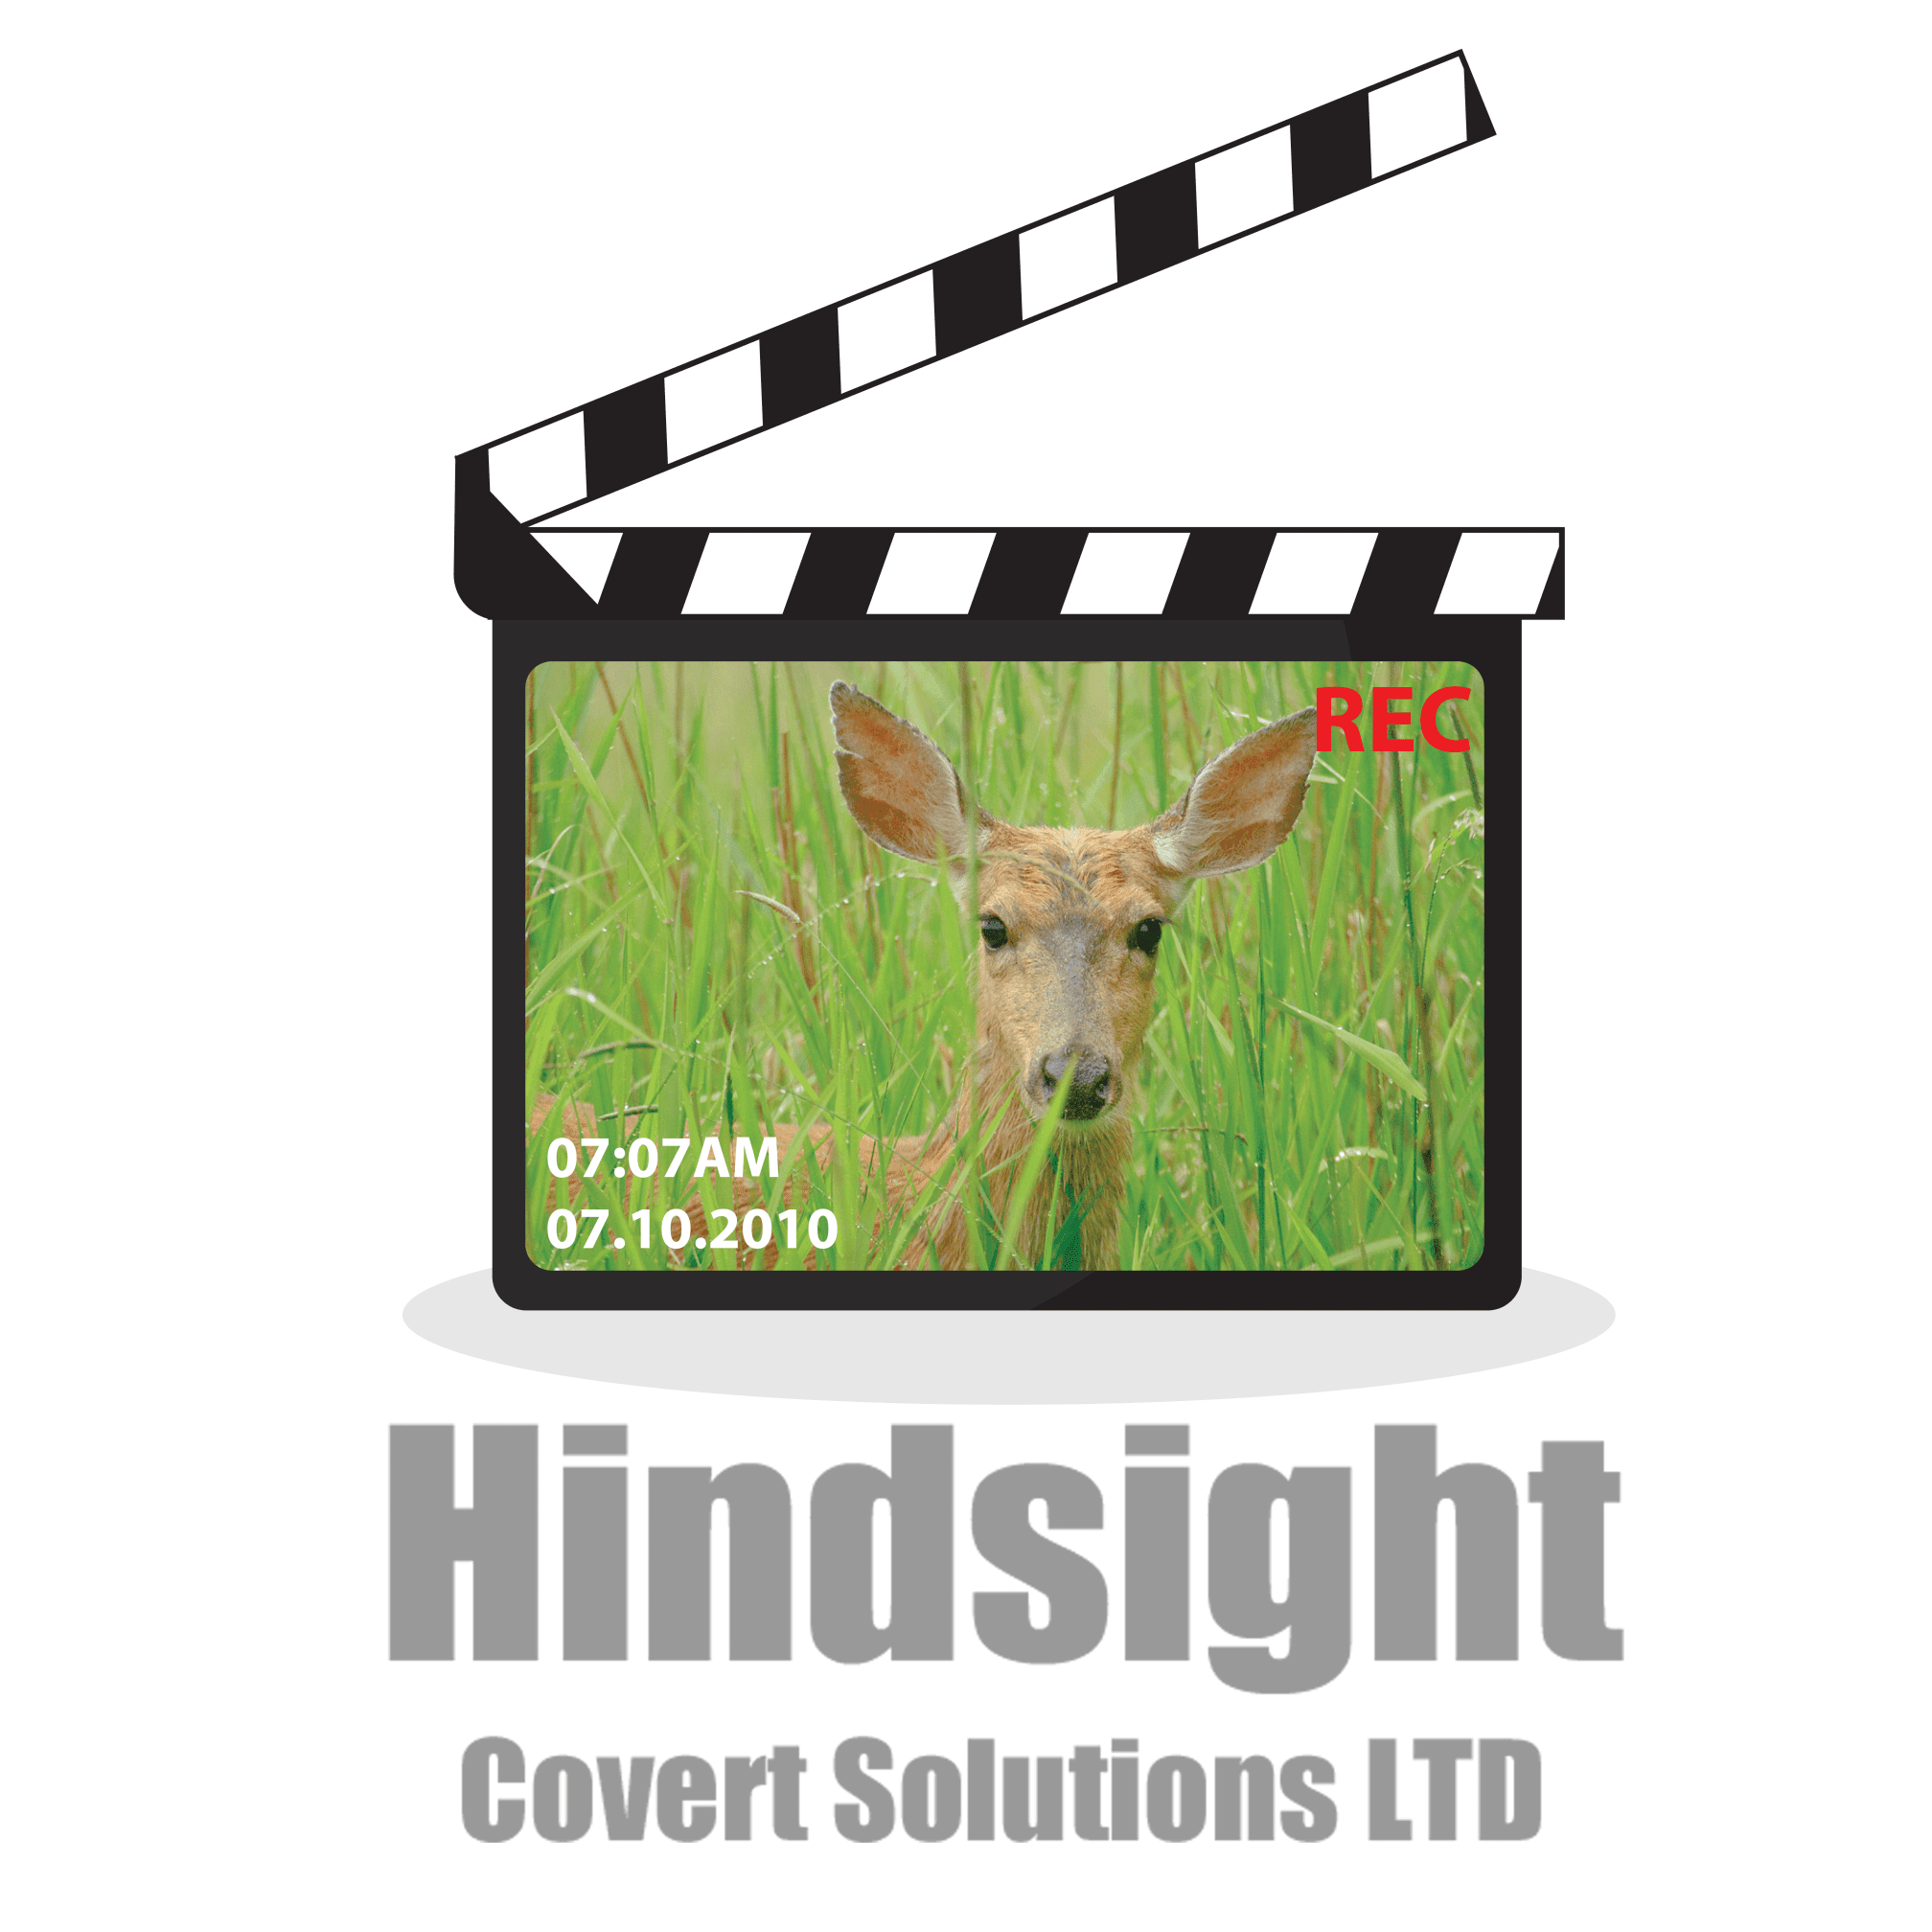 Hindsight Covert Solutions Ltd - Pontefract, West Yorkshire WF9 3NR - 01977 650141 | ShowMeLocal.com